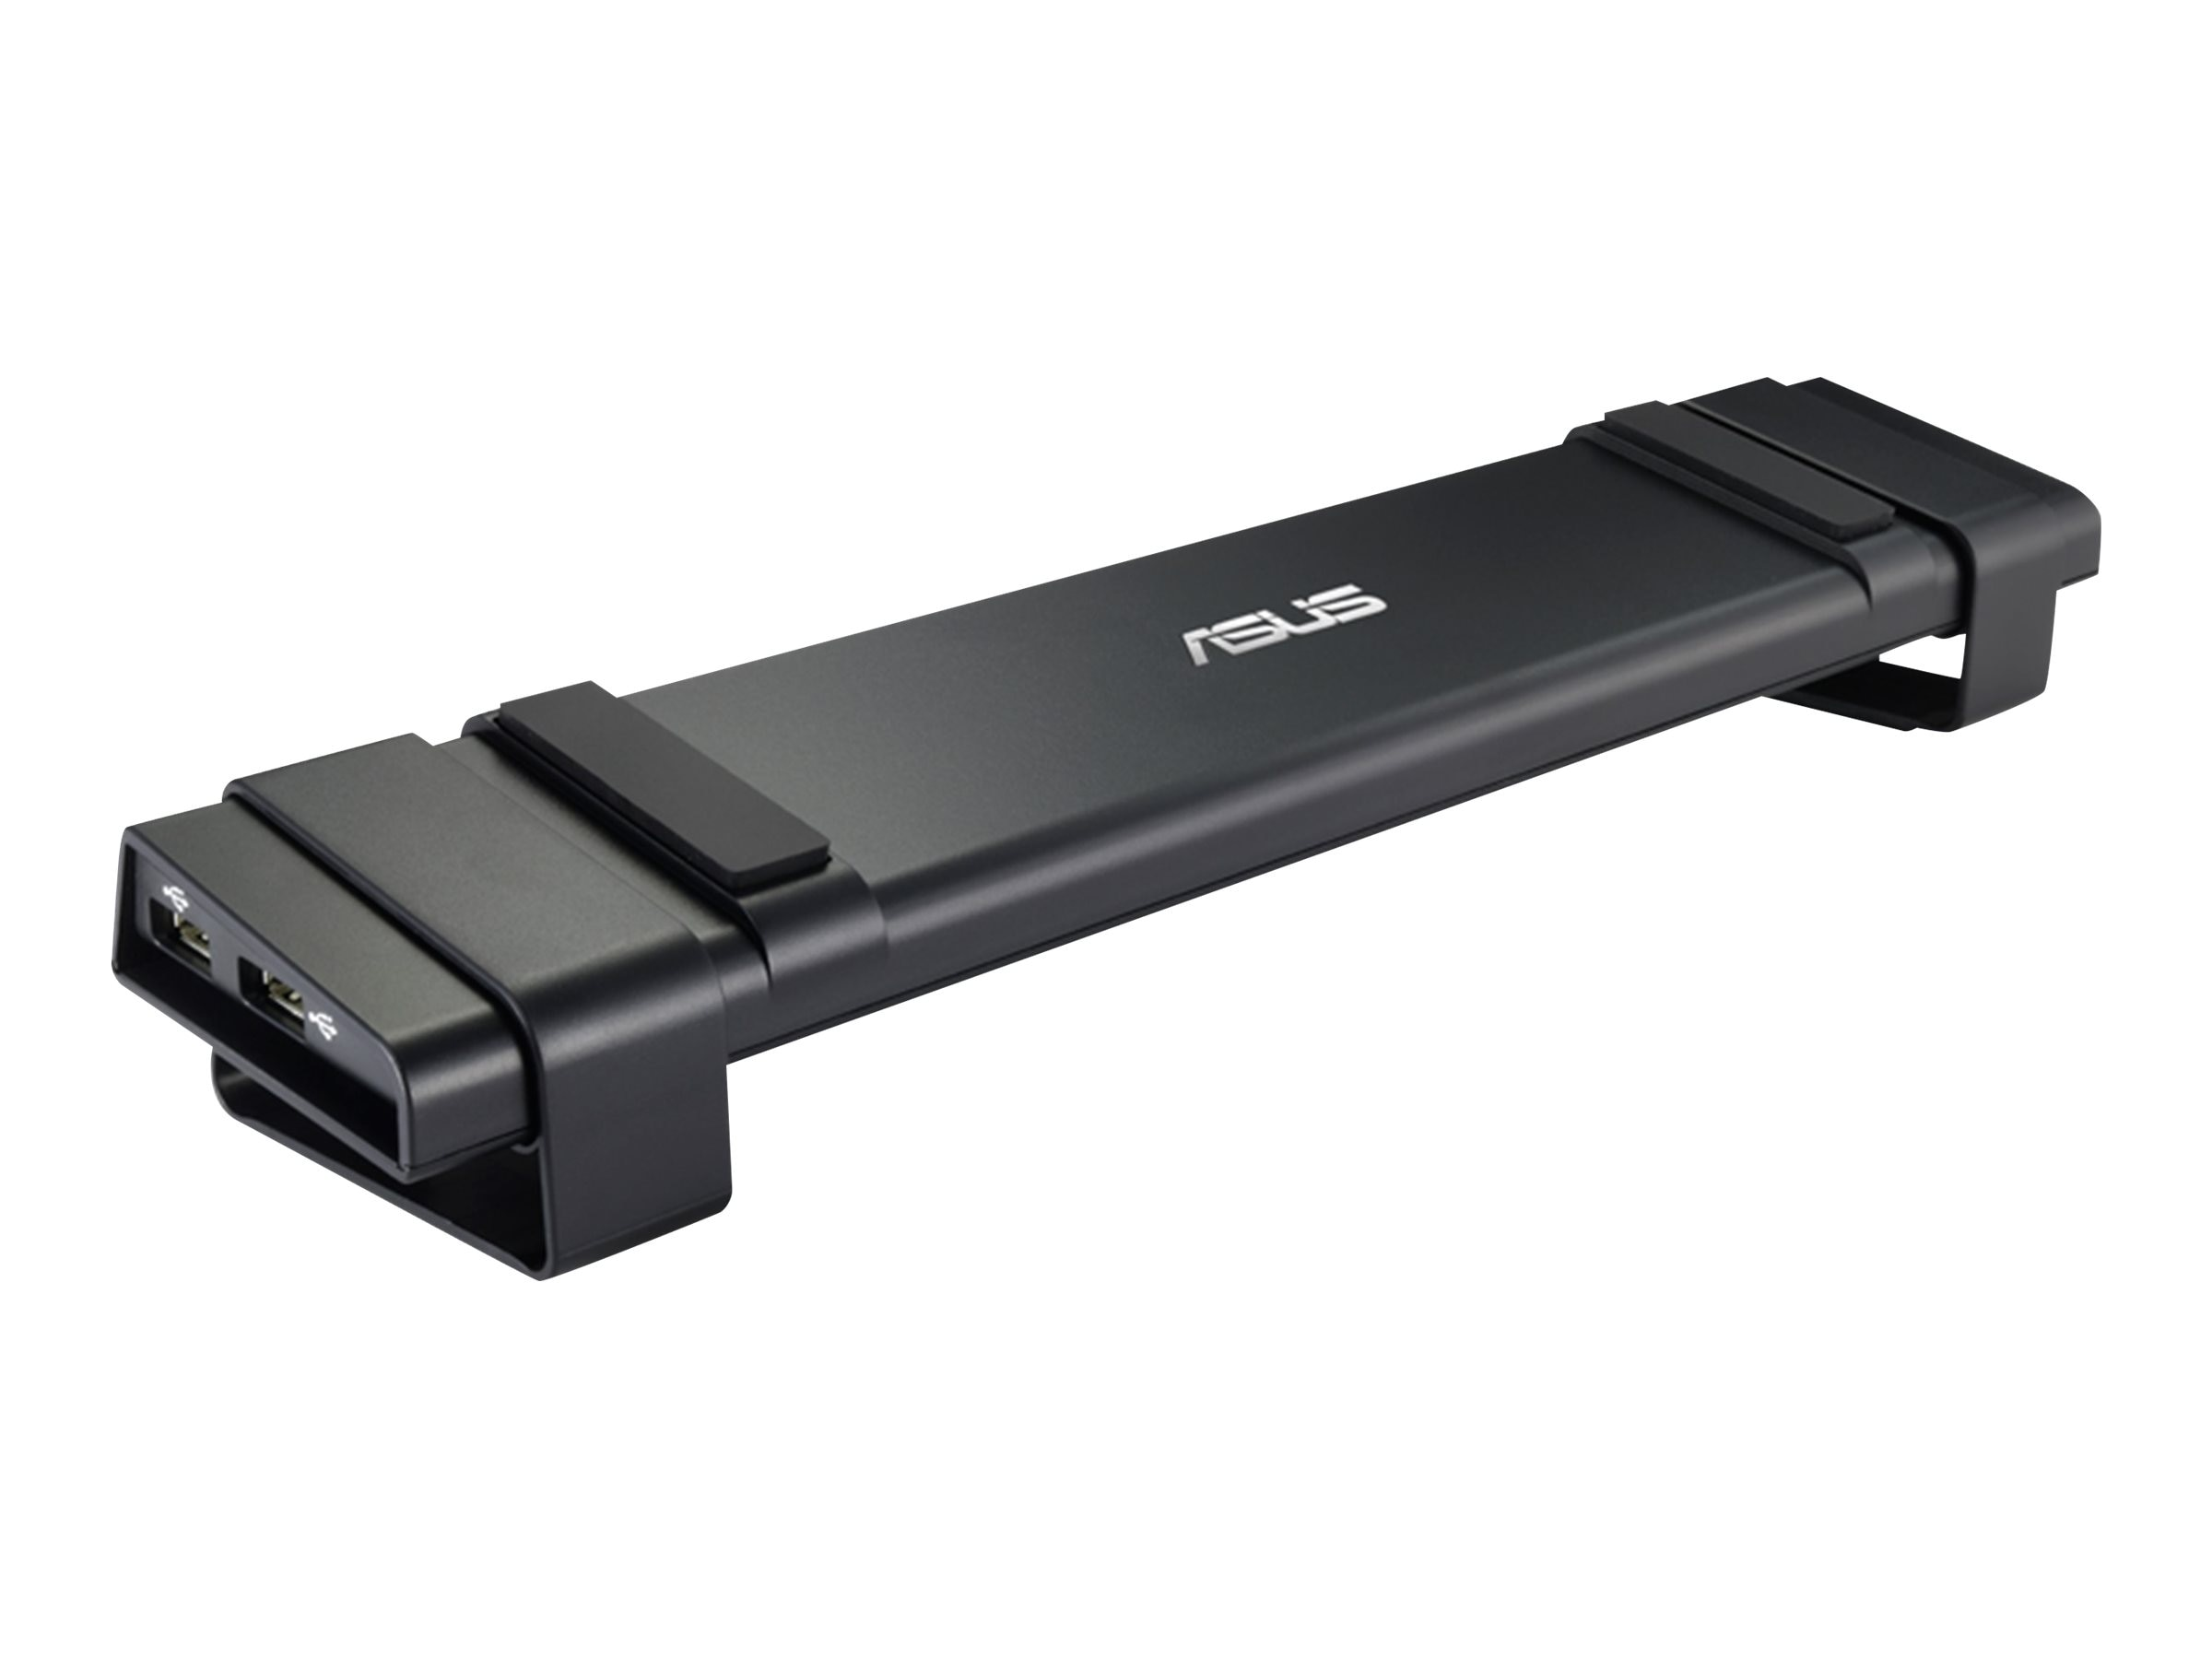 Asus USB 3.0 Docking Station, 90XB027N-BDS000